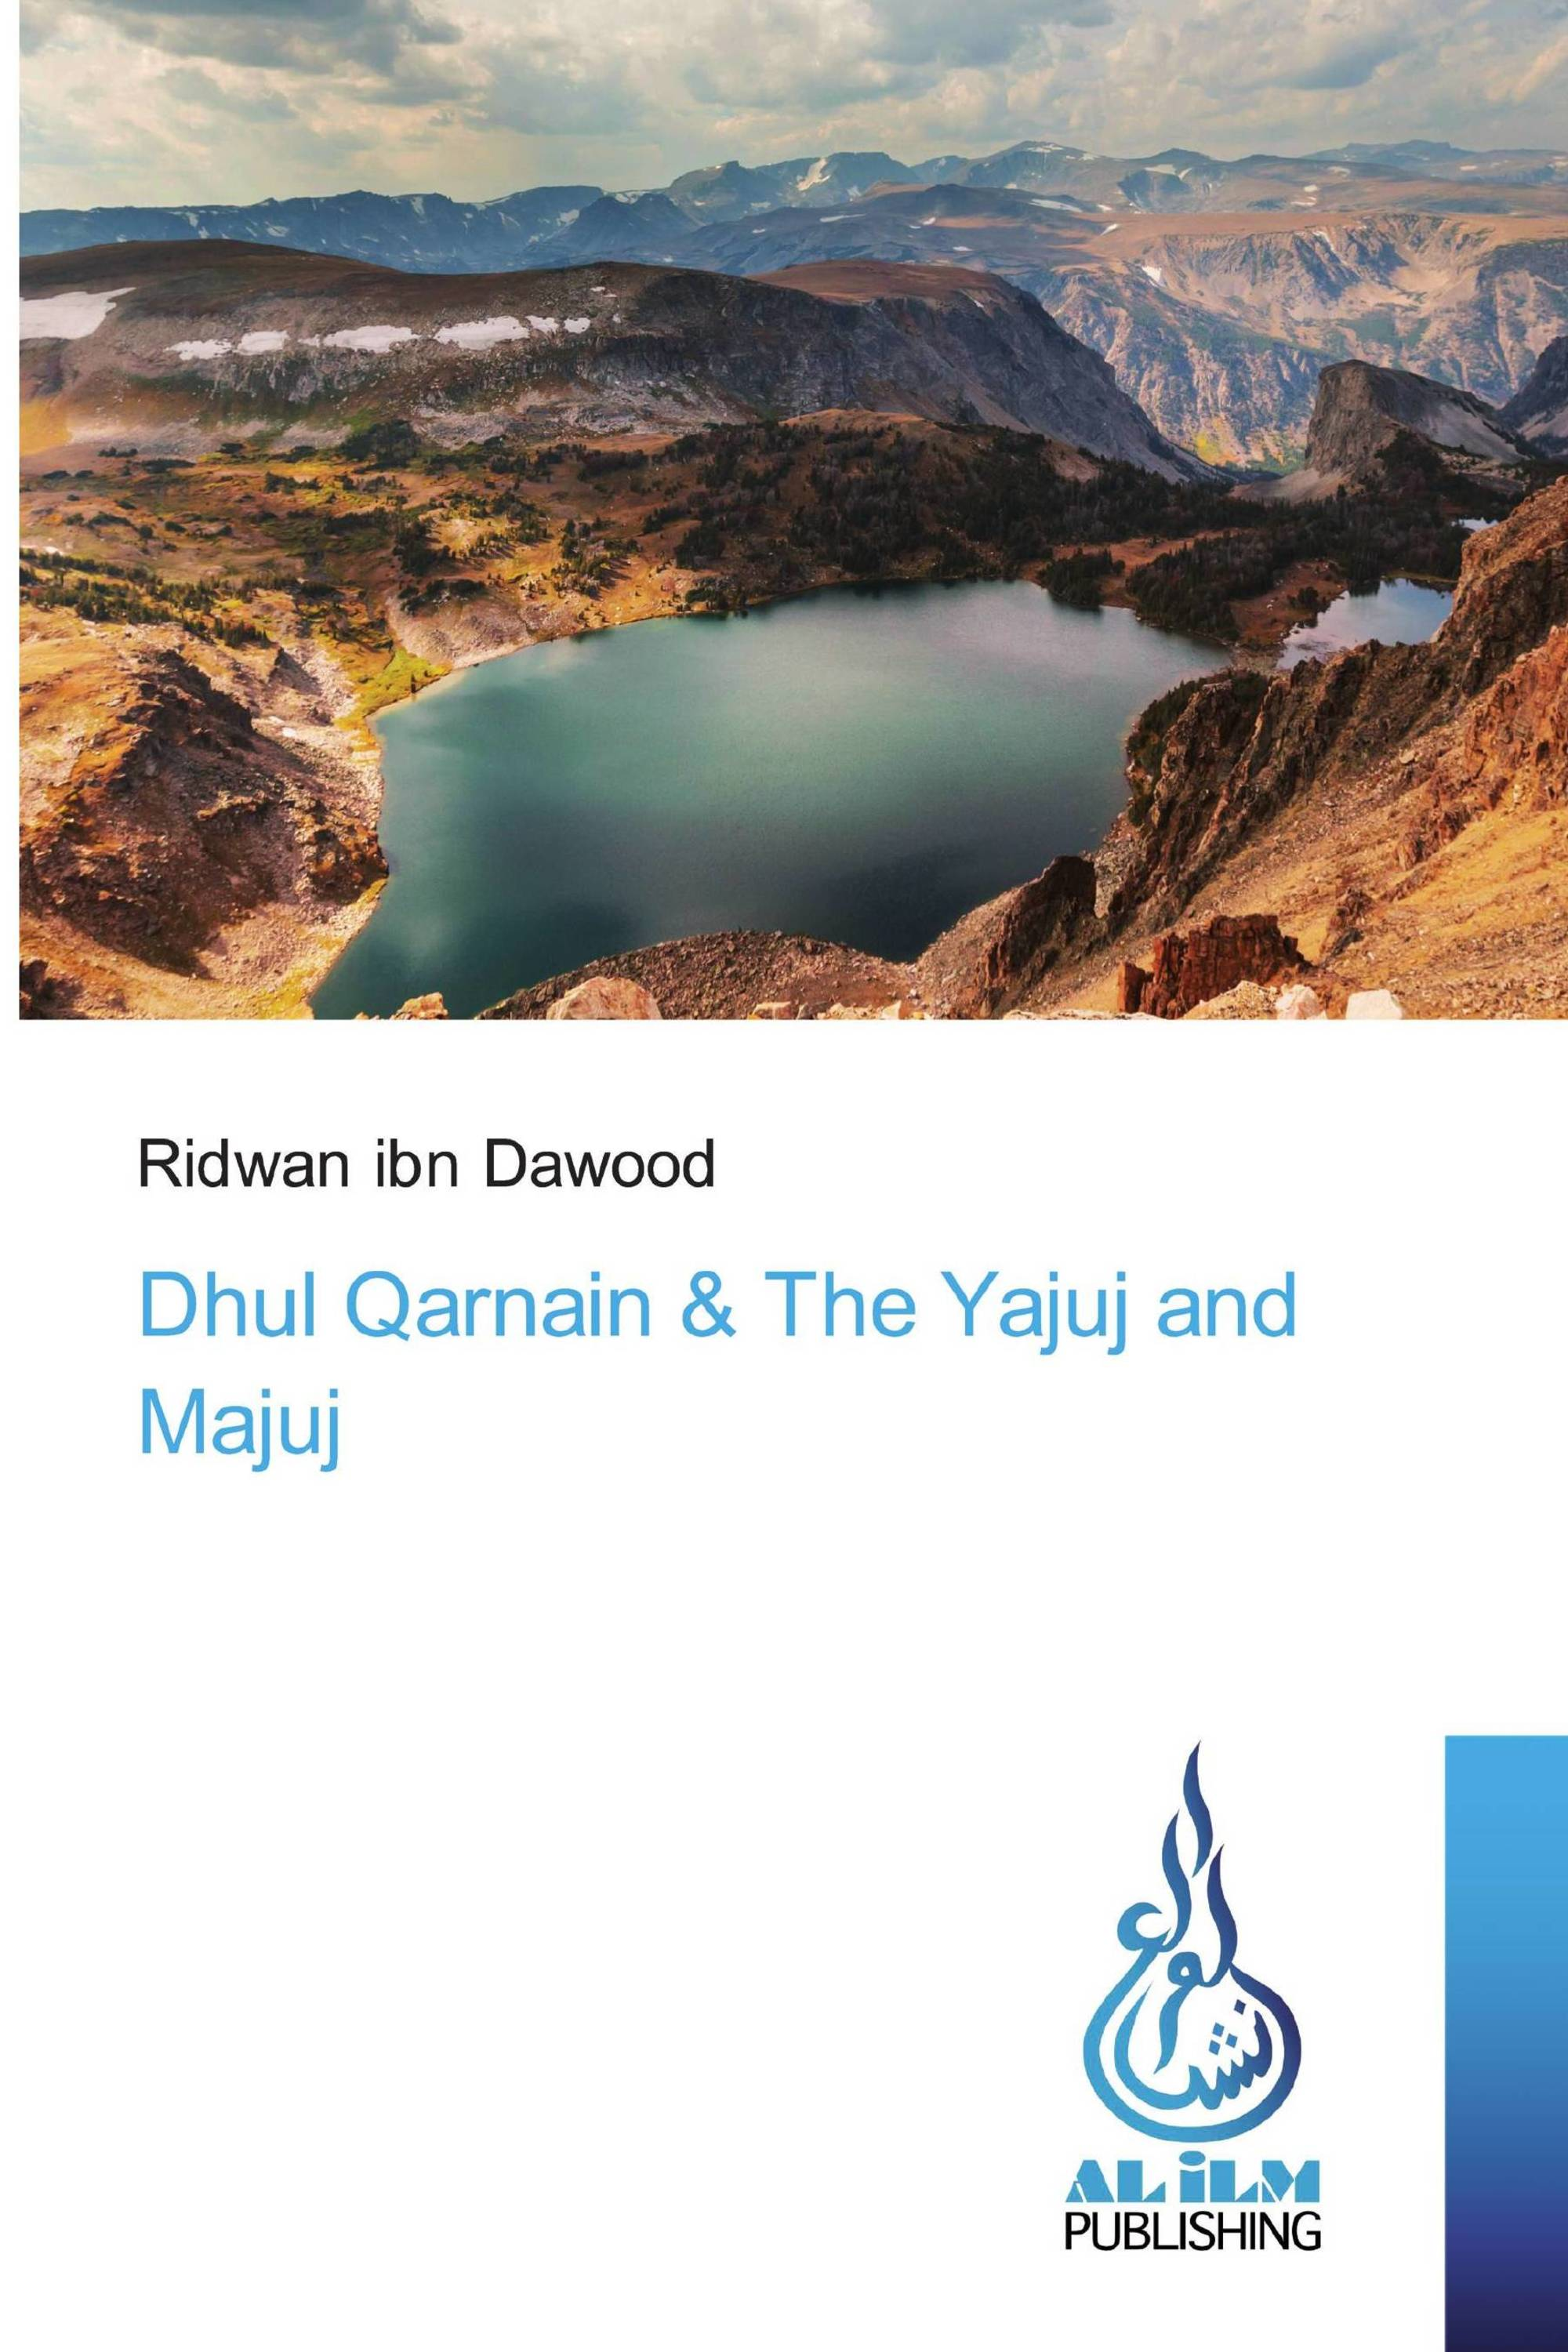 Dhul Qarnain & The Yajuj and Majuj